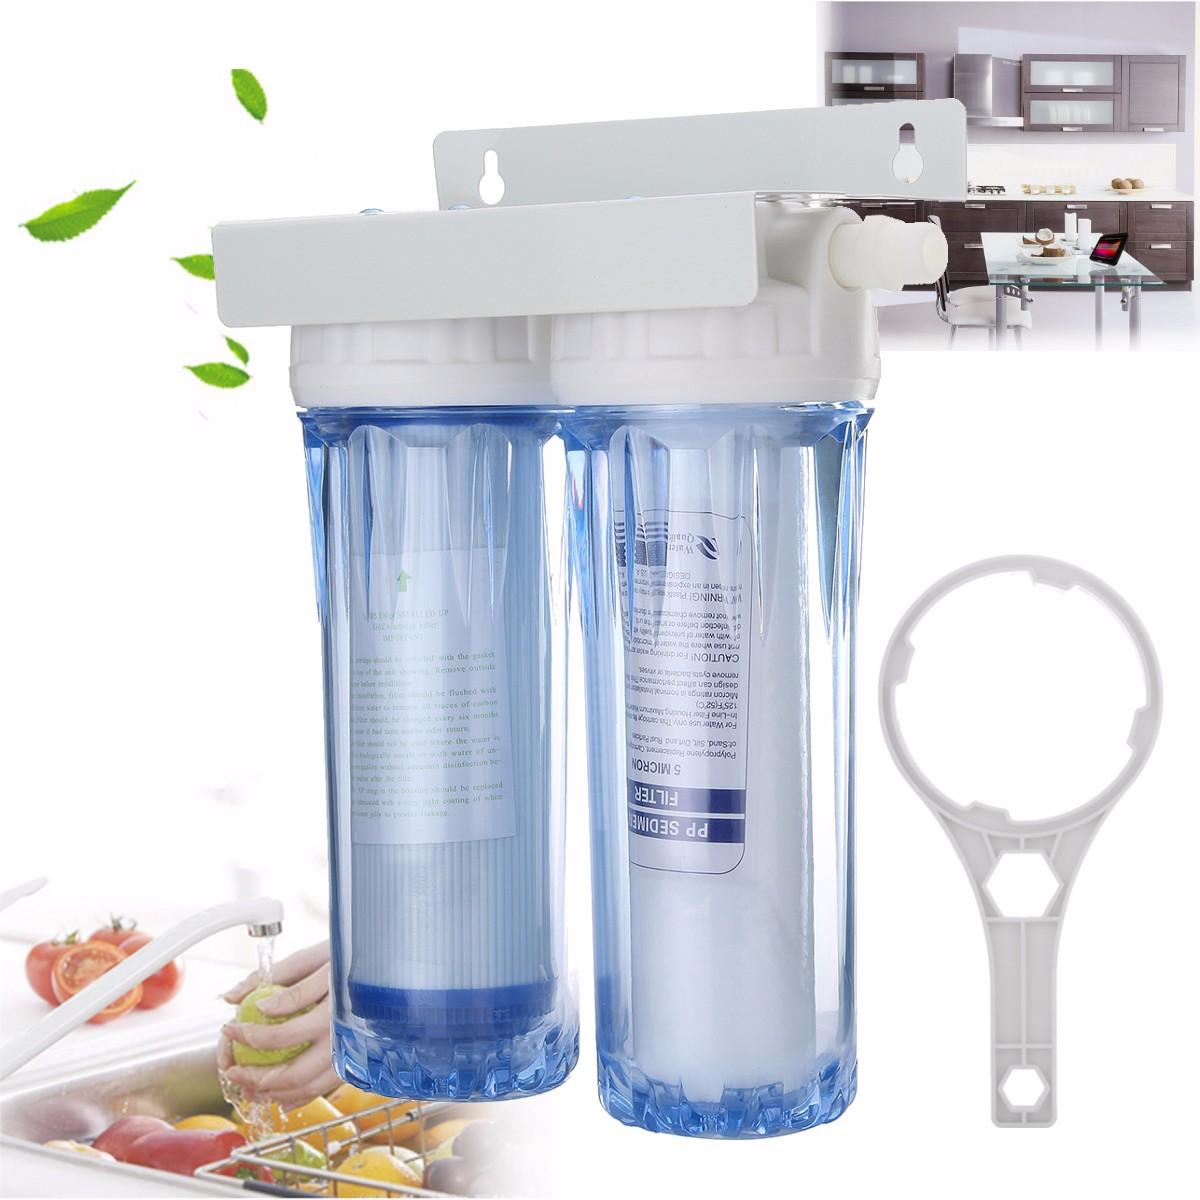 10 Dual Dual Reverse Osmosis Faucet Tap Water Filter Health Purifier Cartridge Home Kitchen